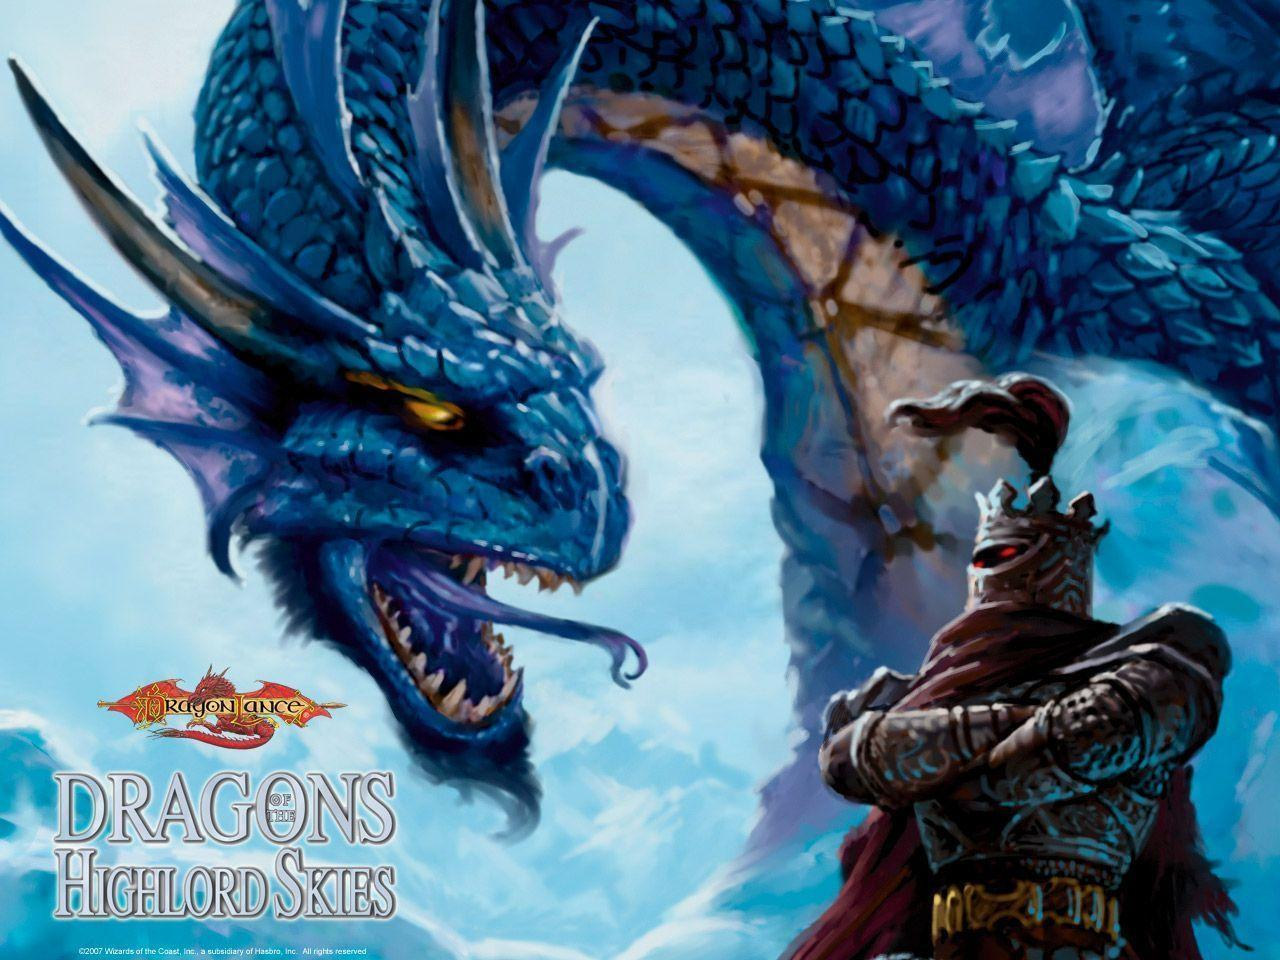 Dragonlance Wallpapers 1280x960